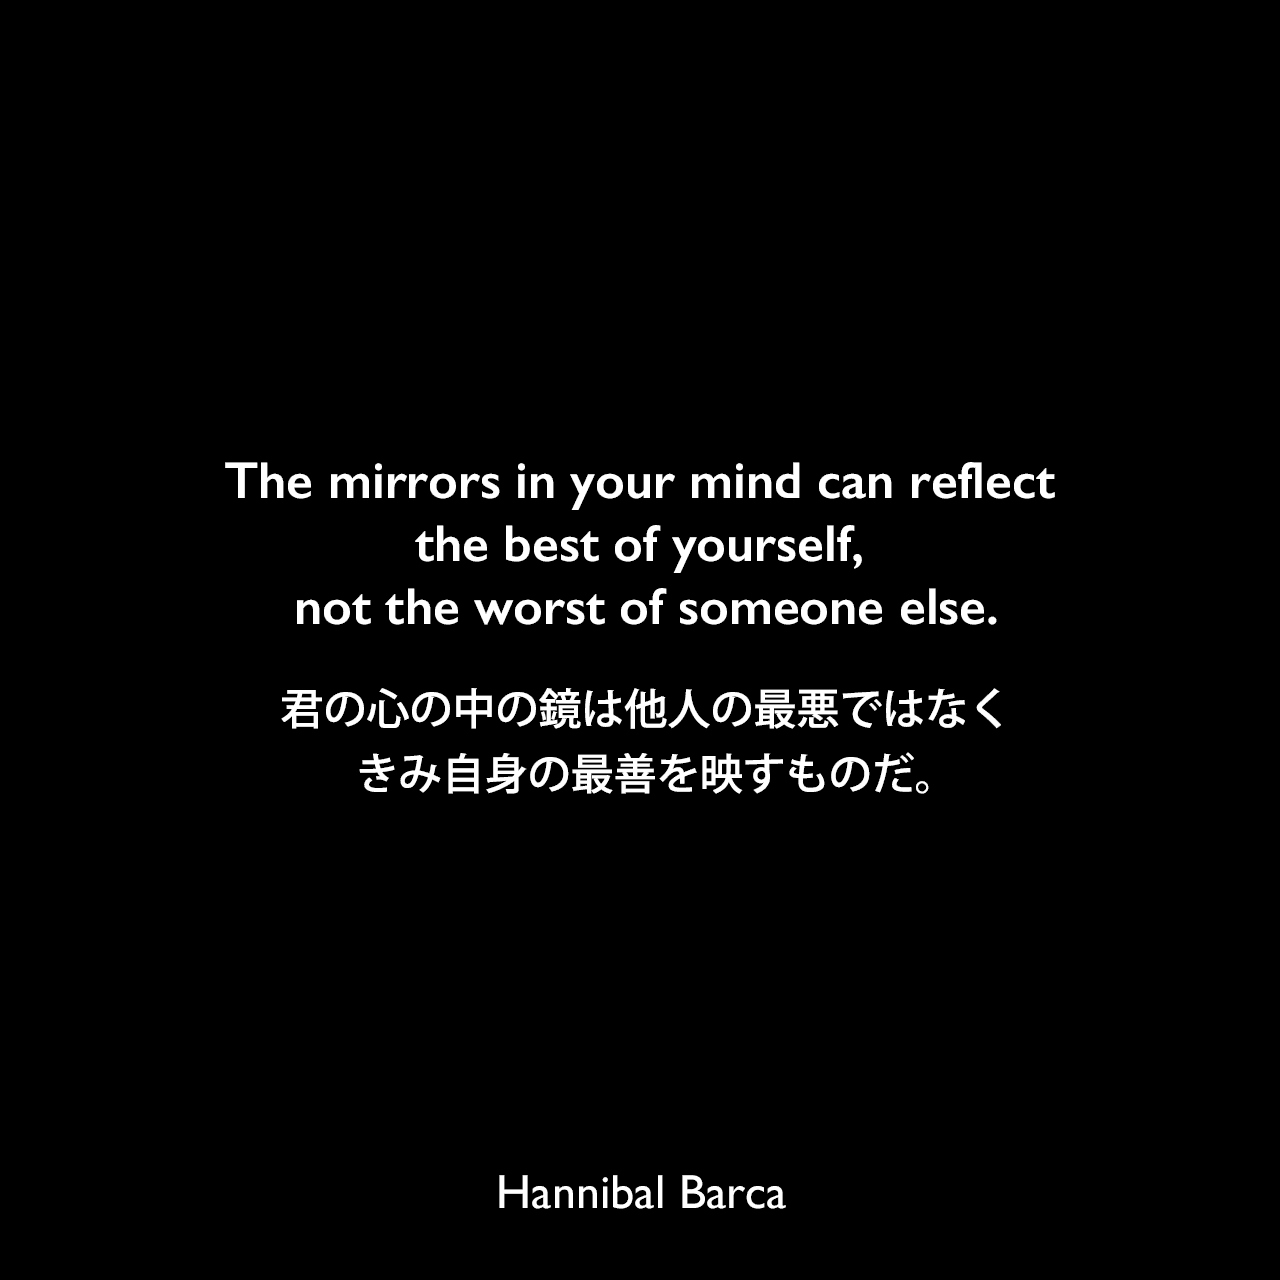 The mirrors in your mind can reflect the best of yourself, not the worst of someone else.君の心の中の鏡は他人の最悪ではなく、きみ自身の最善を映すものだ。Hannibal Barca